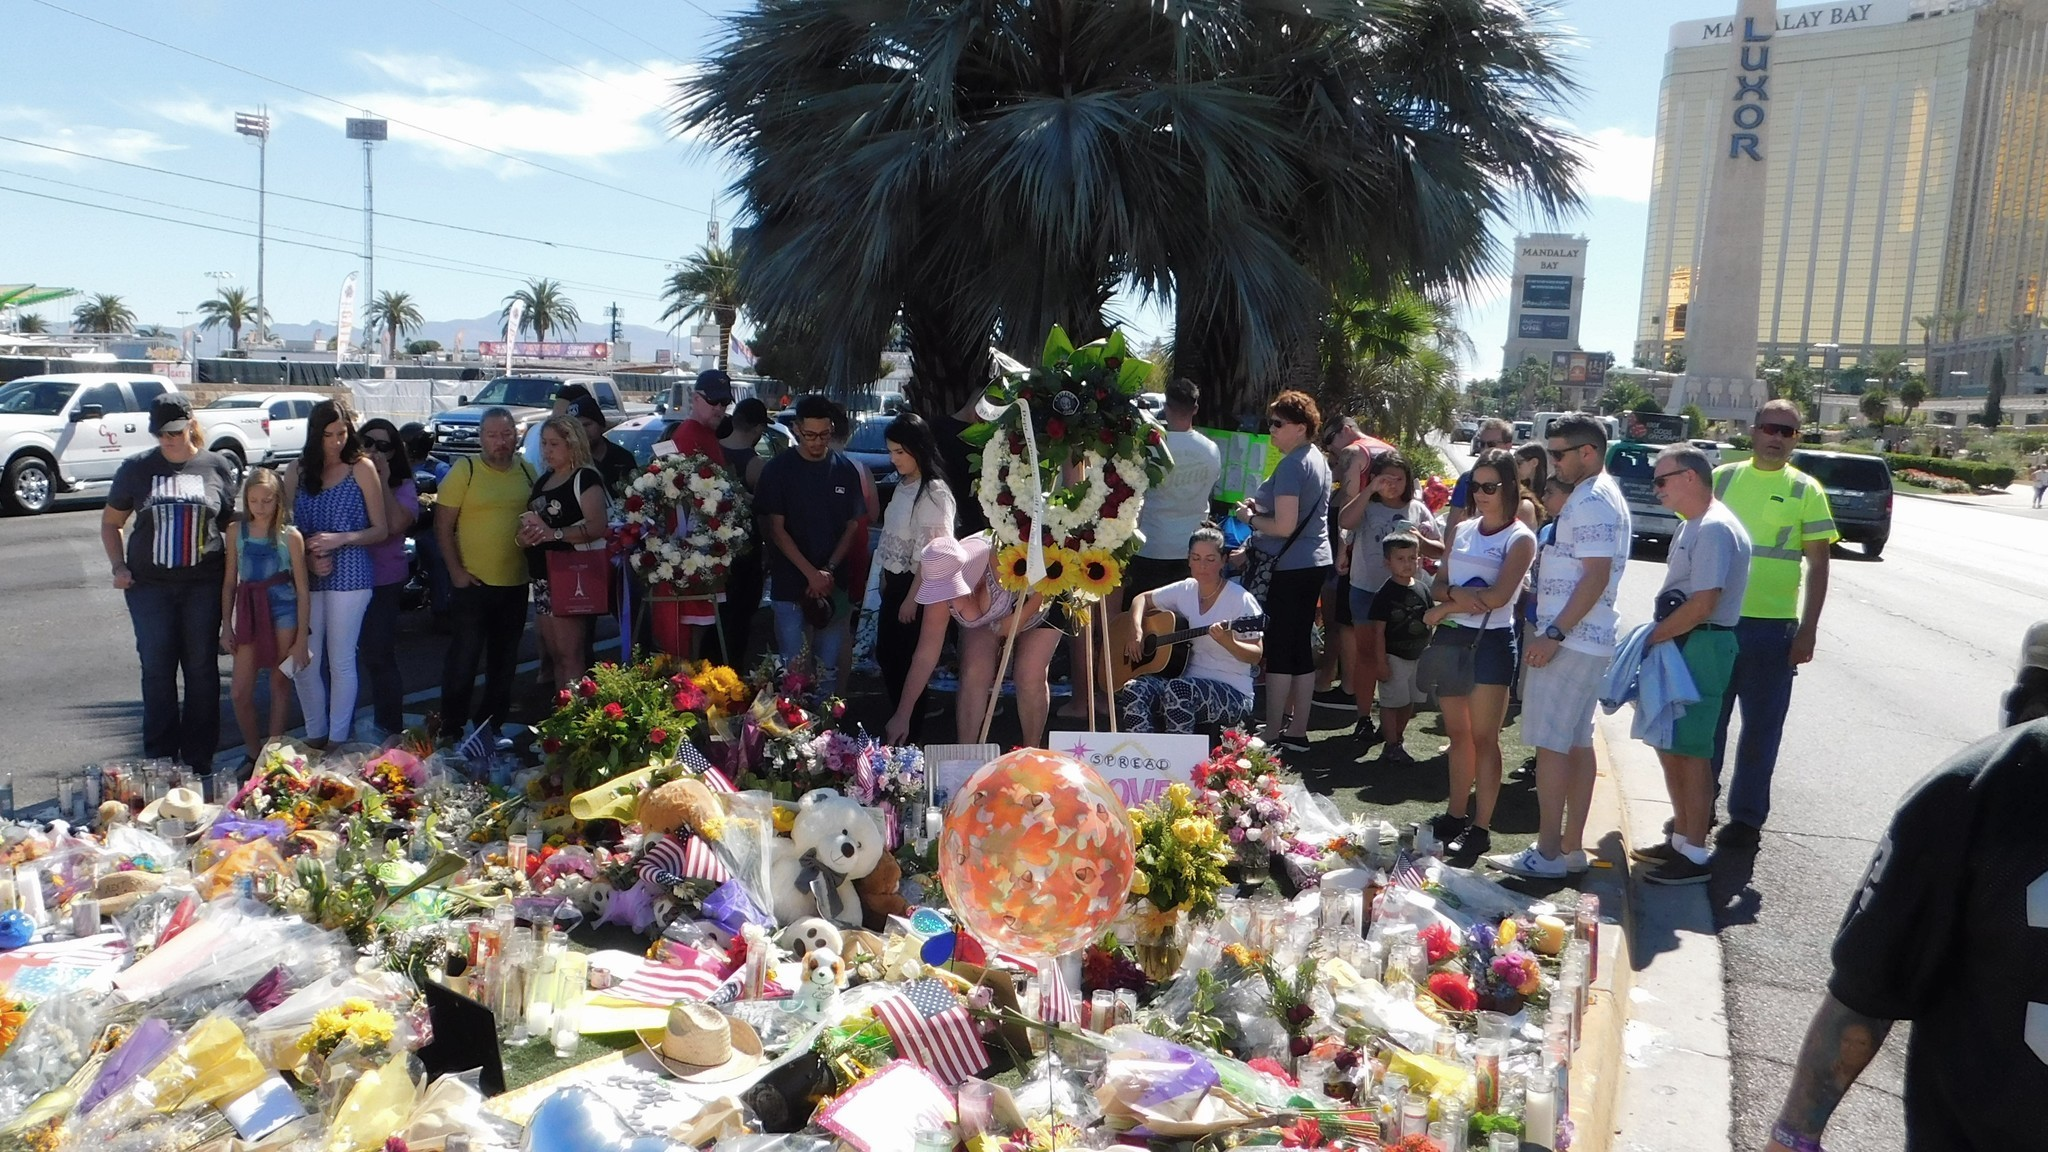 In a median along Las Vegas Boulevard, locals and tourists come to pay their respects to the 58 people who died.